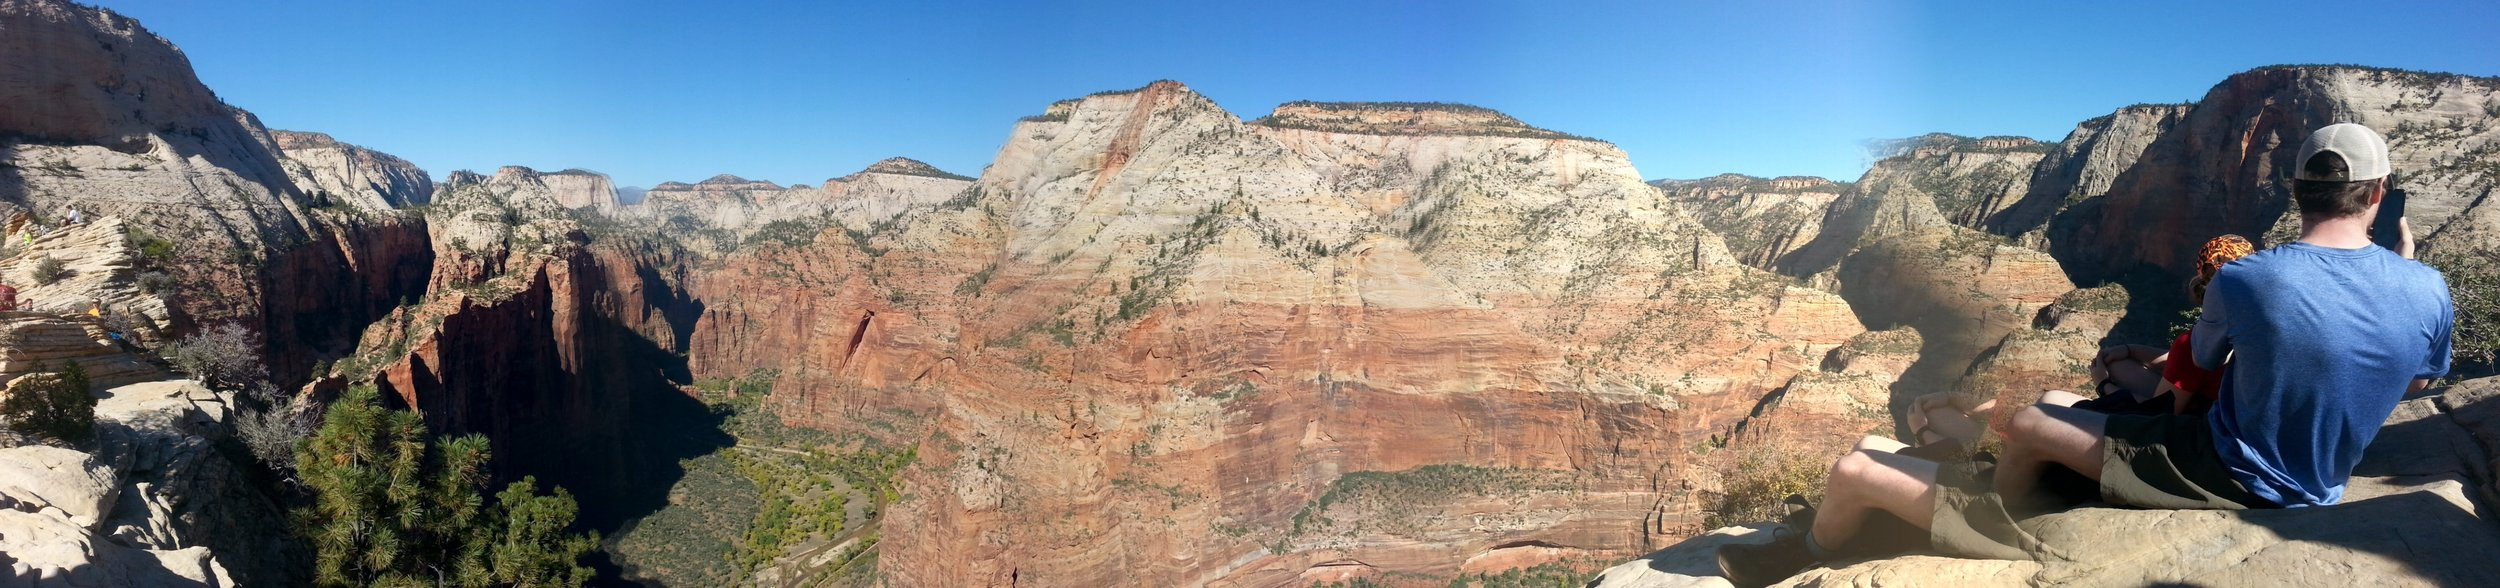 The Panoramic View from the top of Angels Landing in  Zion National Park.